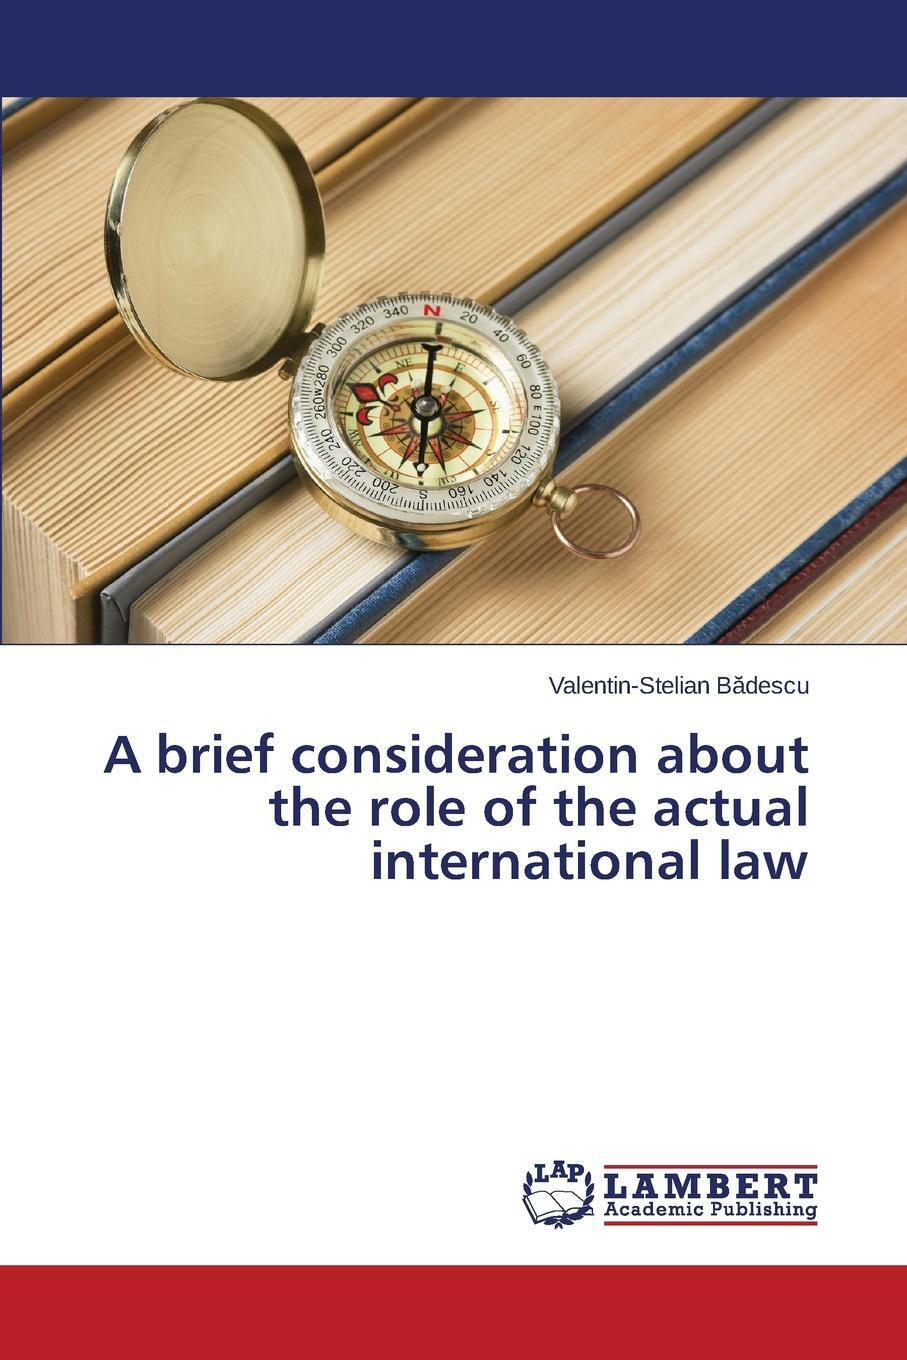 Bădescu Valentin-Stelian. A brief consideration about the role of the actual international law